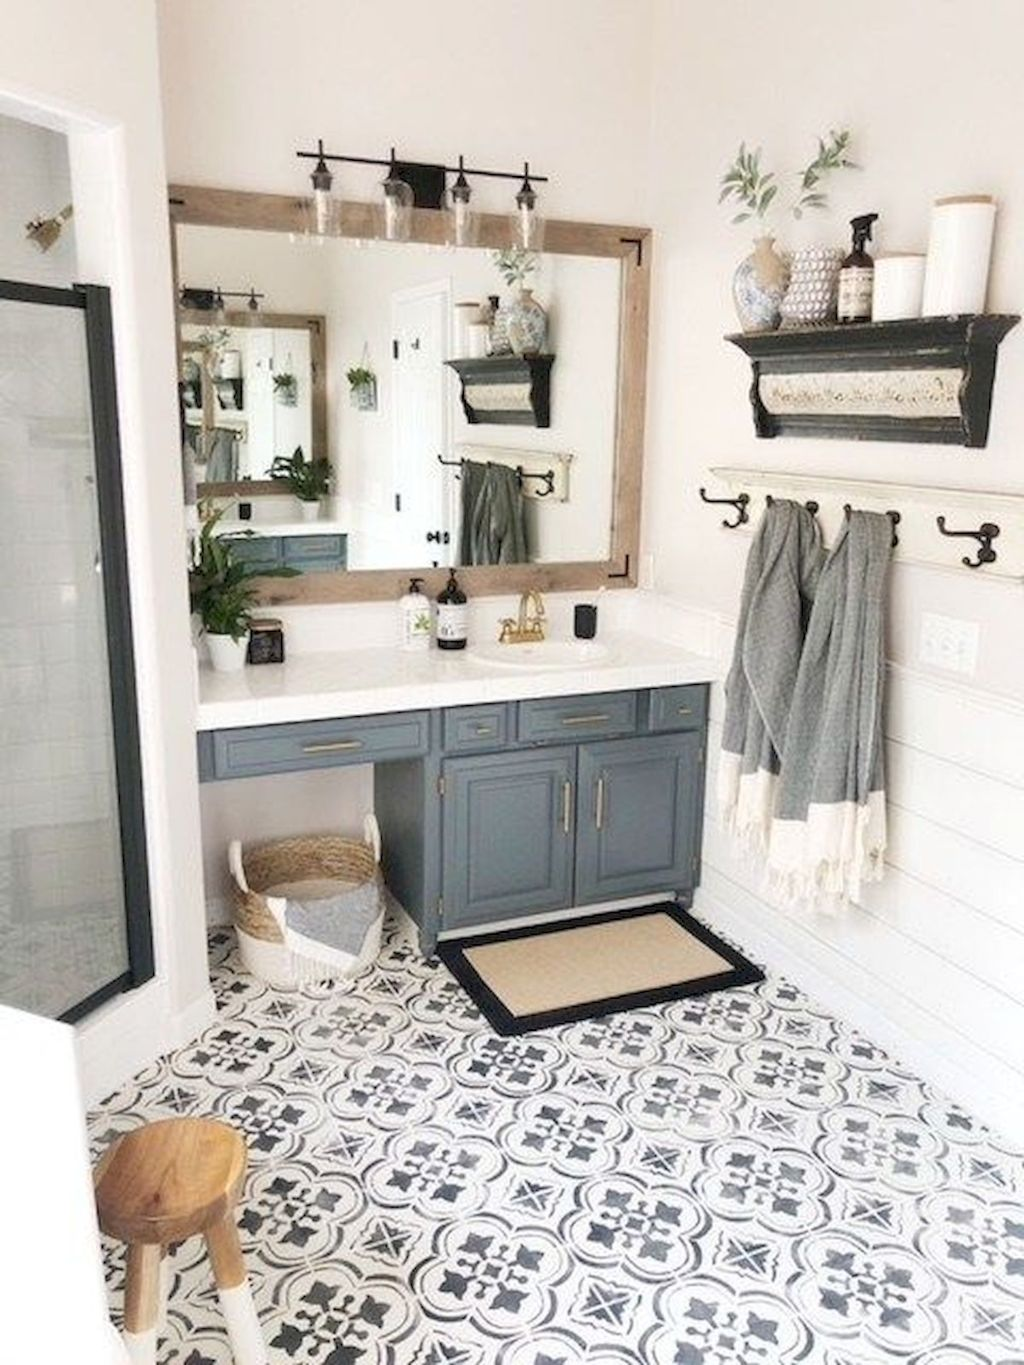 Beautiful bathroom update with eclectic patterned tiles and ethnic rugs very efficient to improve bathroom floor design Image 27